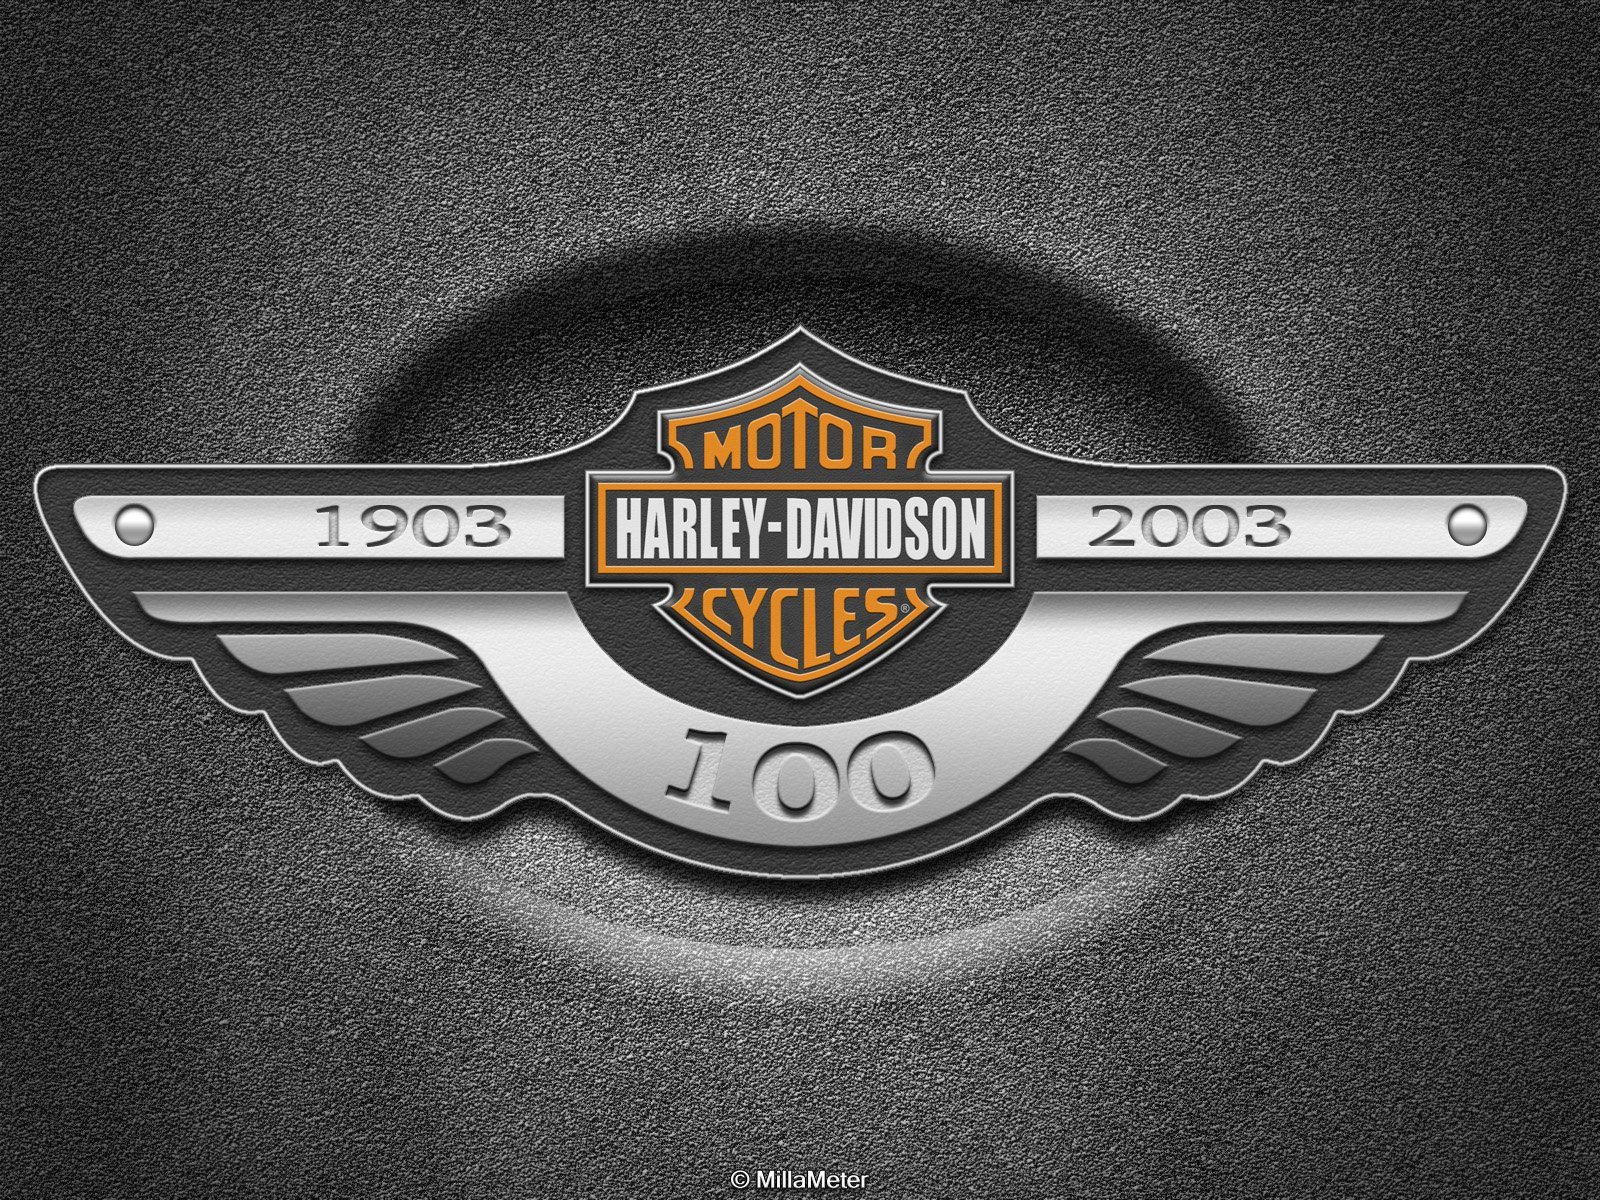 hd wallpaper background id125018 1600x1200 vehicles harley davidson 37 like